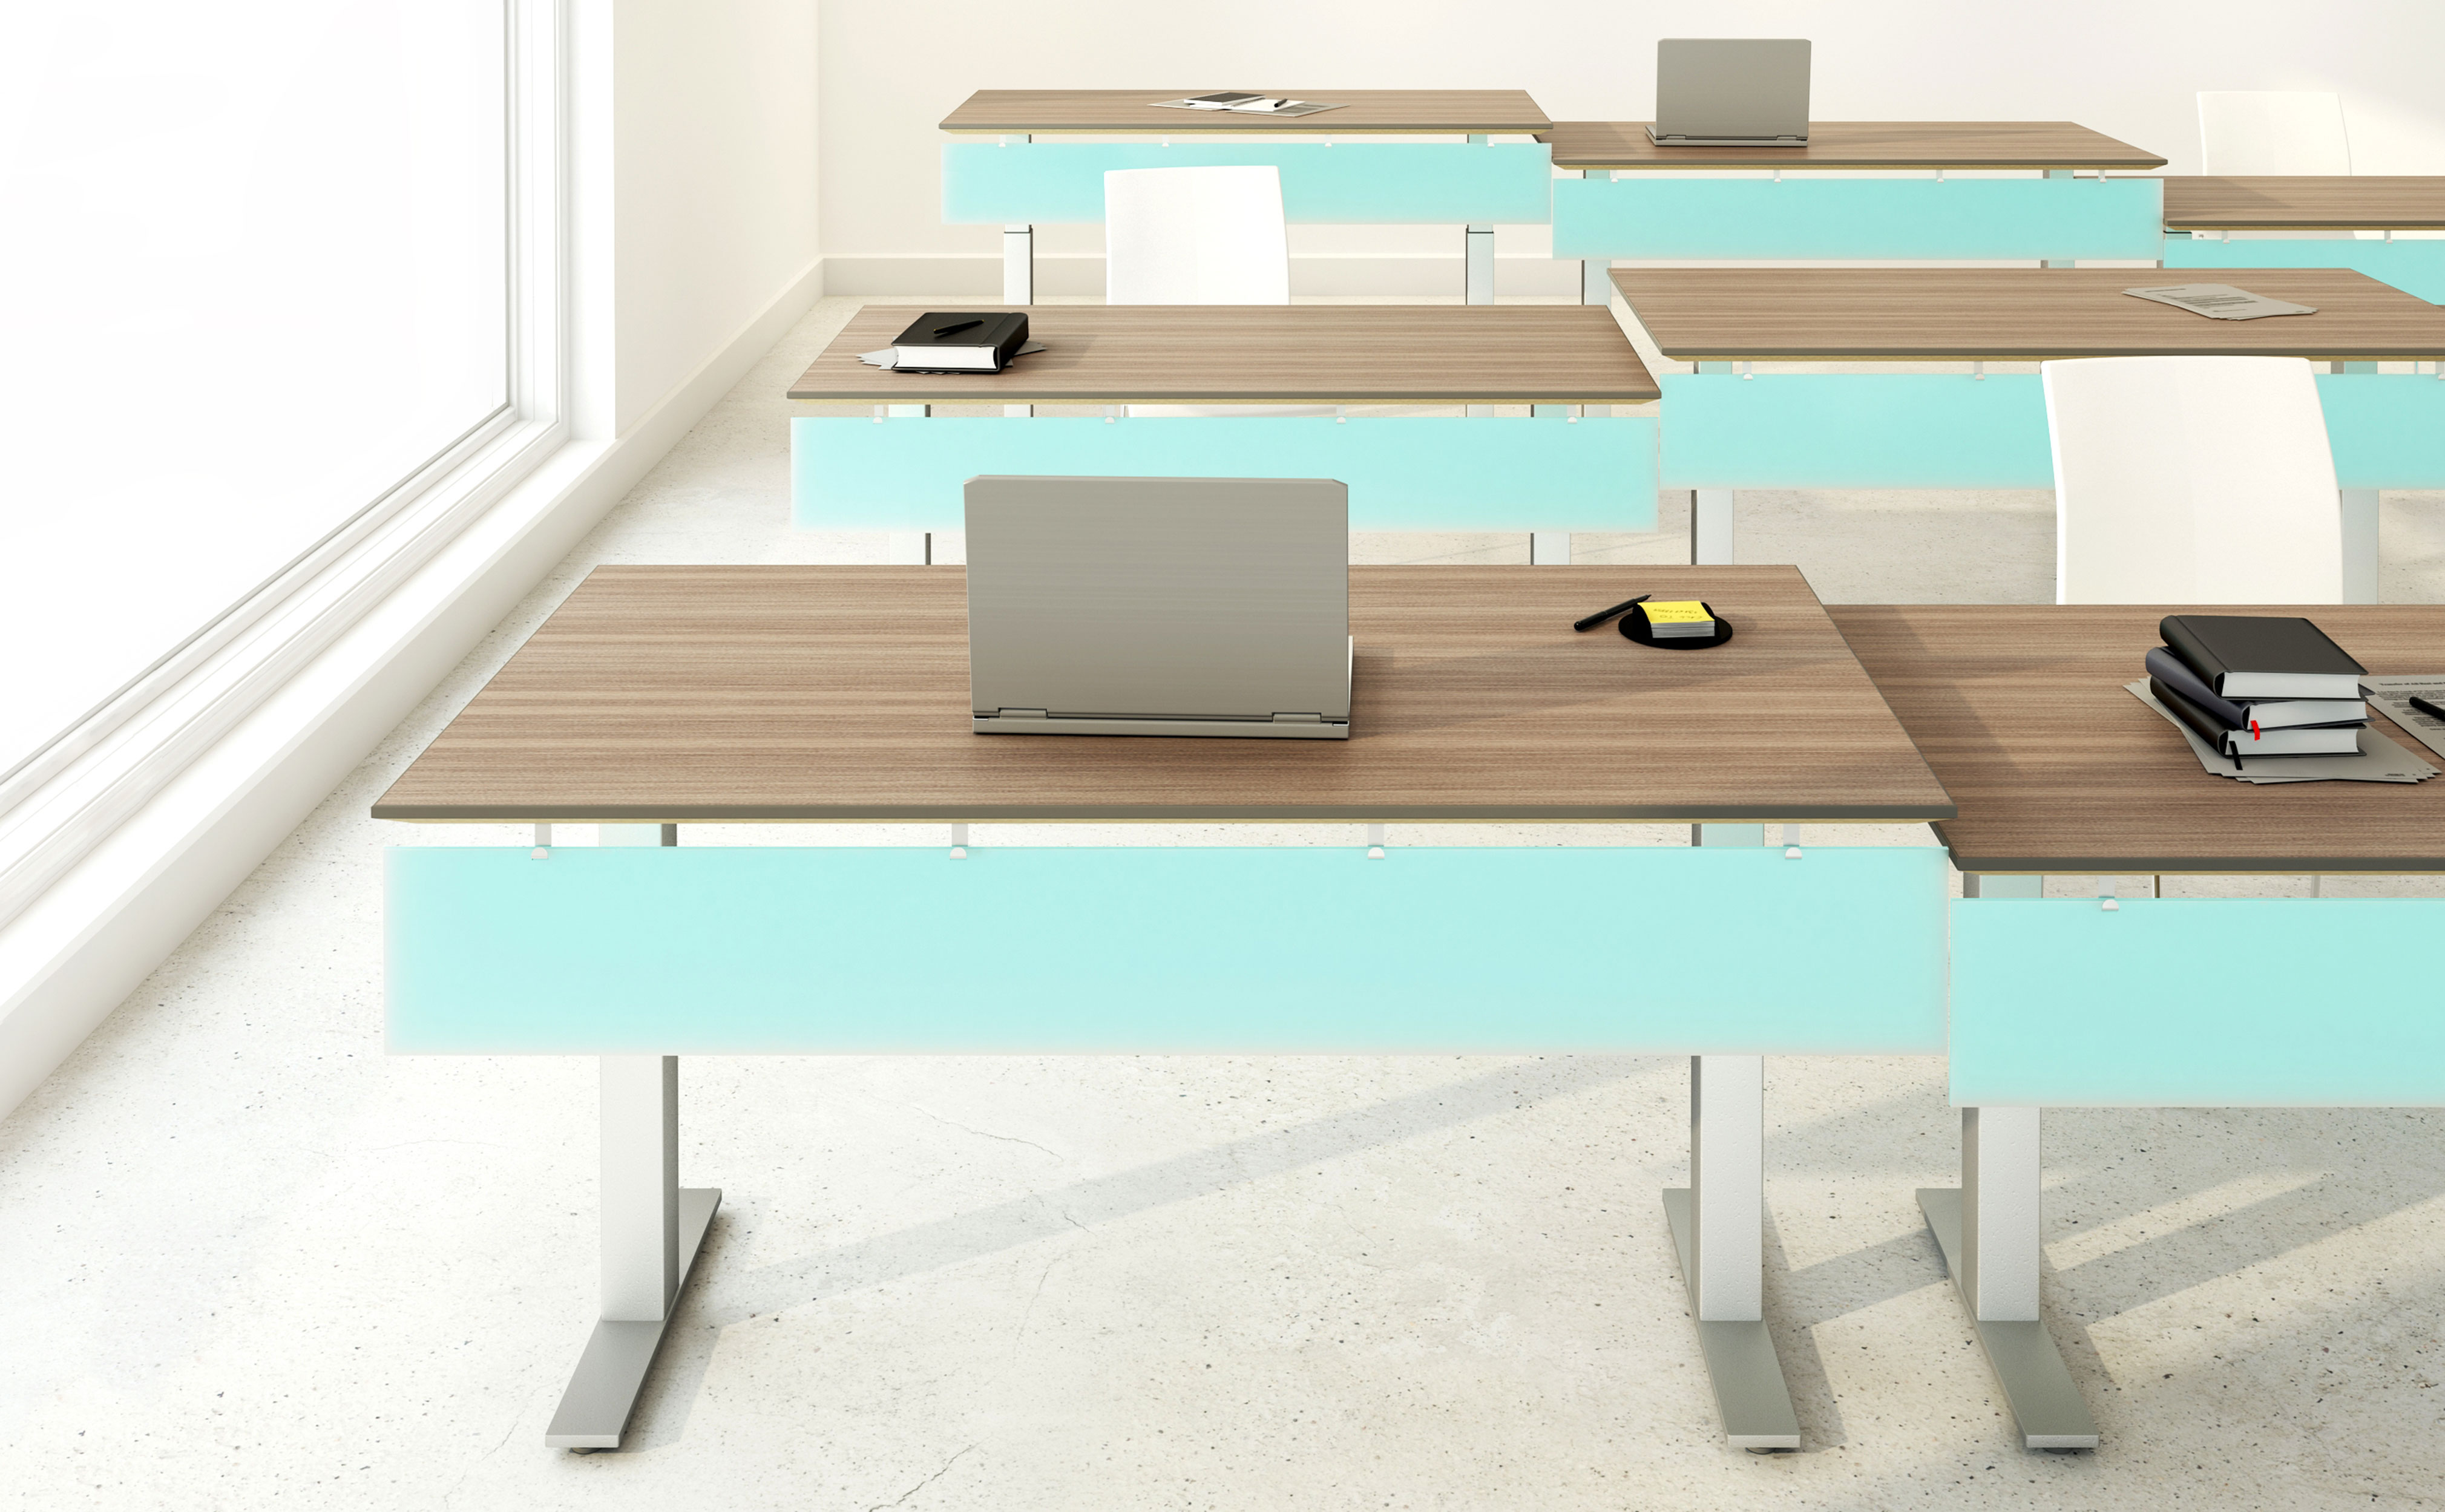 Pax Application Ideas Nevins - Adjustable height training table